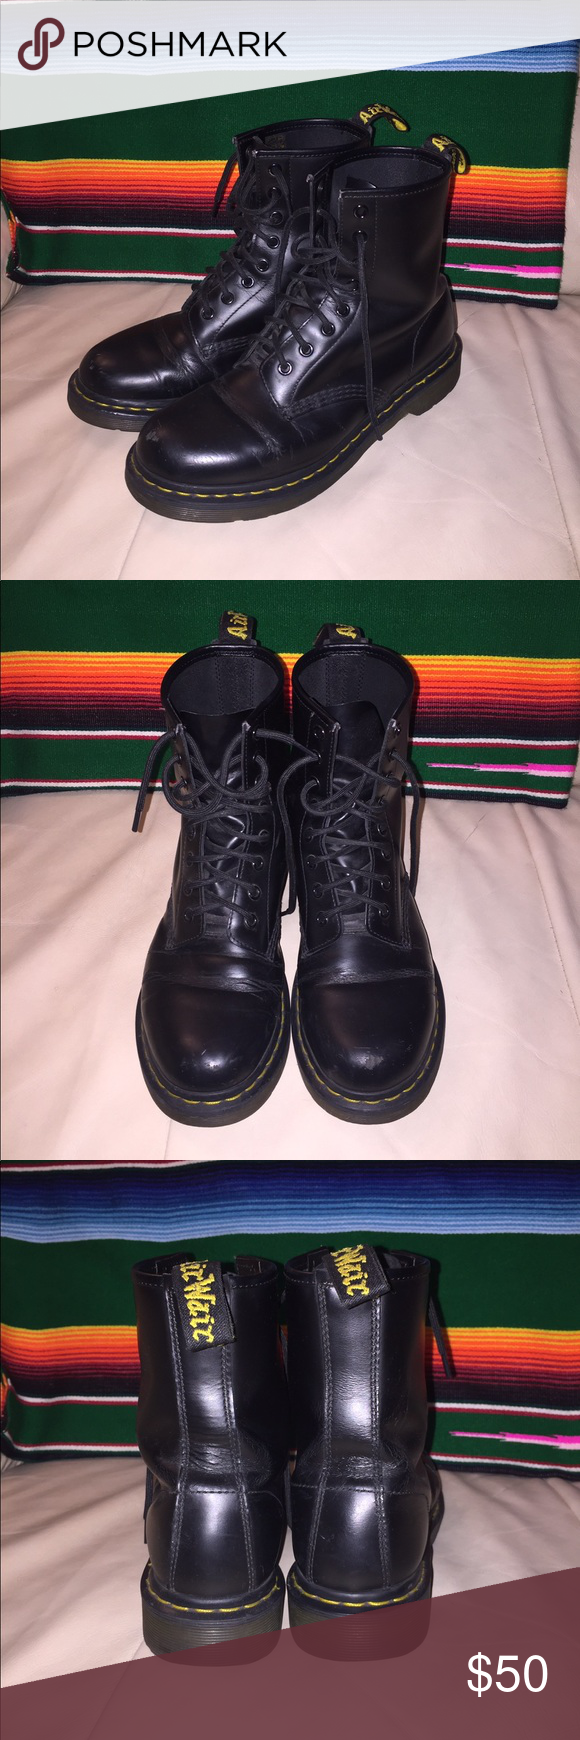 Doc Martens, Black, Women's 9/Men's 7 Black Doc Martens, Women's 9 or Men's 7. Made in Vietnam. Pre-owned....some scruffs on the toes and creasing from normal wear but still in overall excellent shape. Lots of miles left in these! Dr. Martens Shoes Combat & Moto Boots